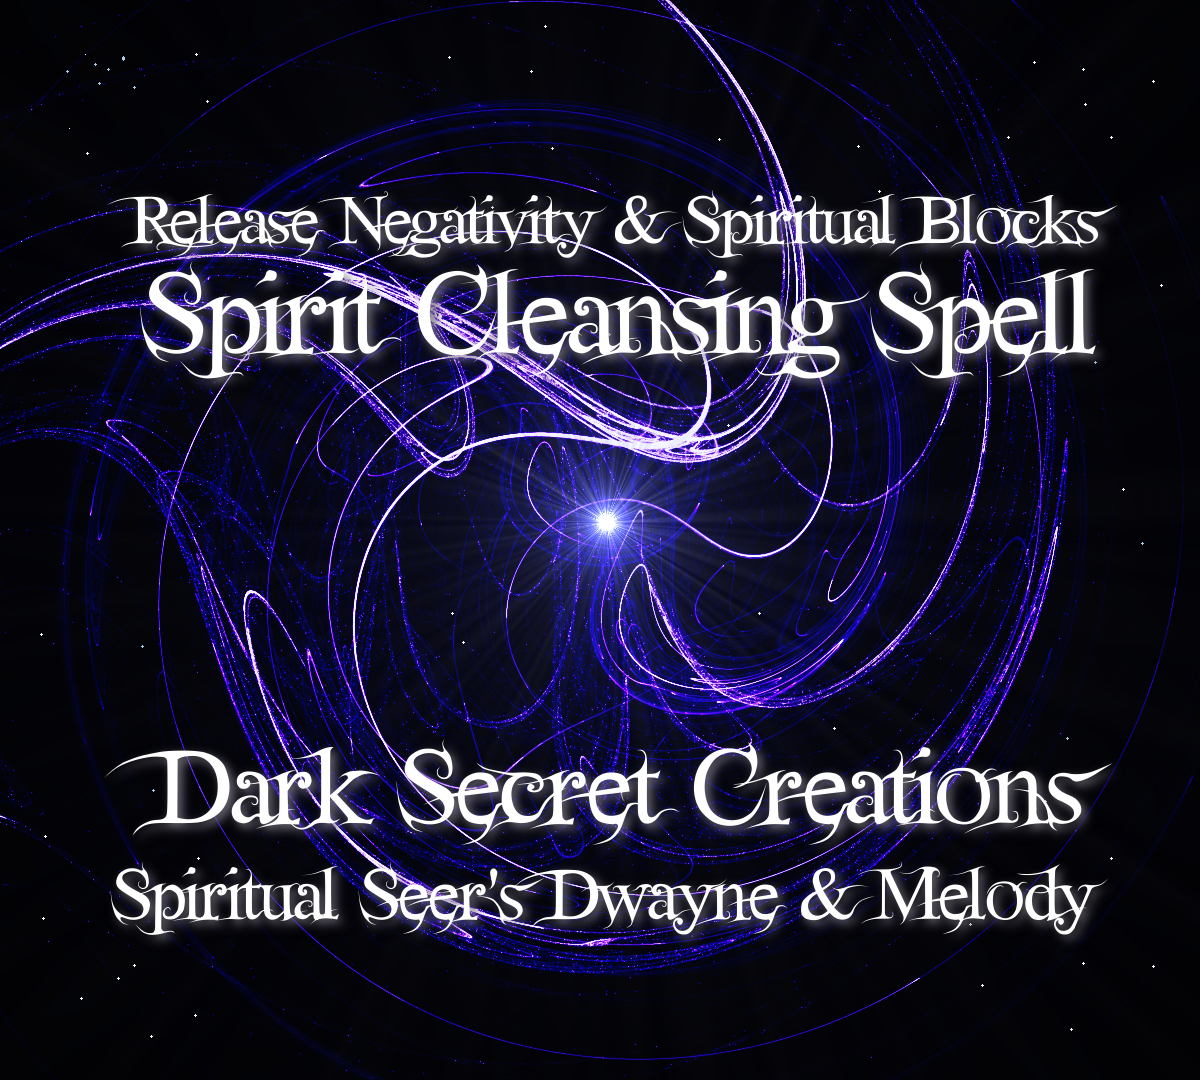 Spirit cleansing